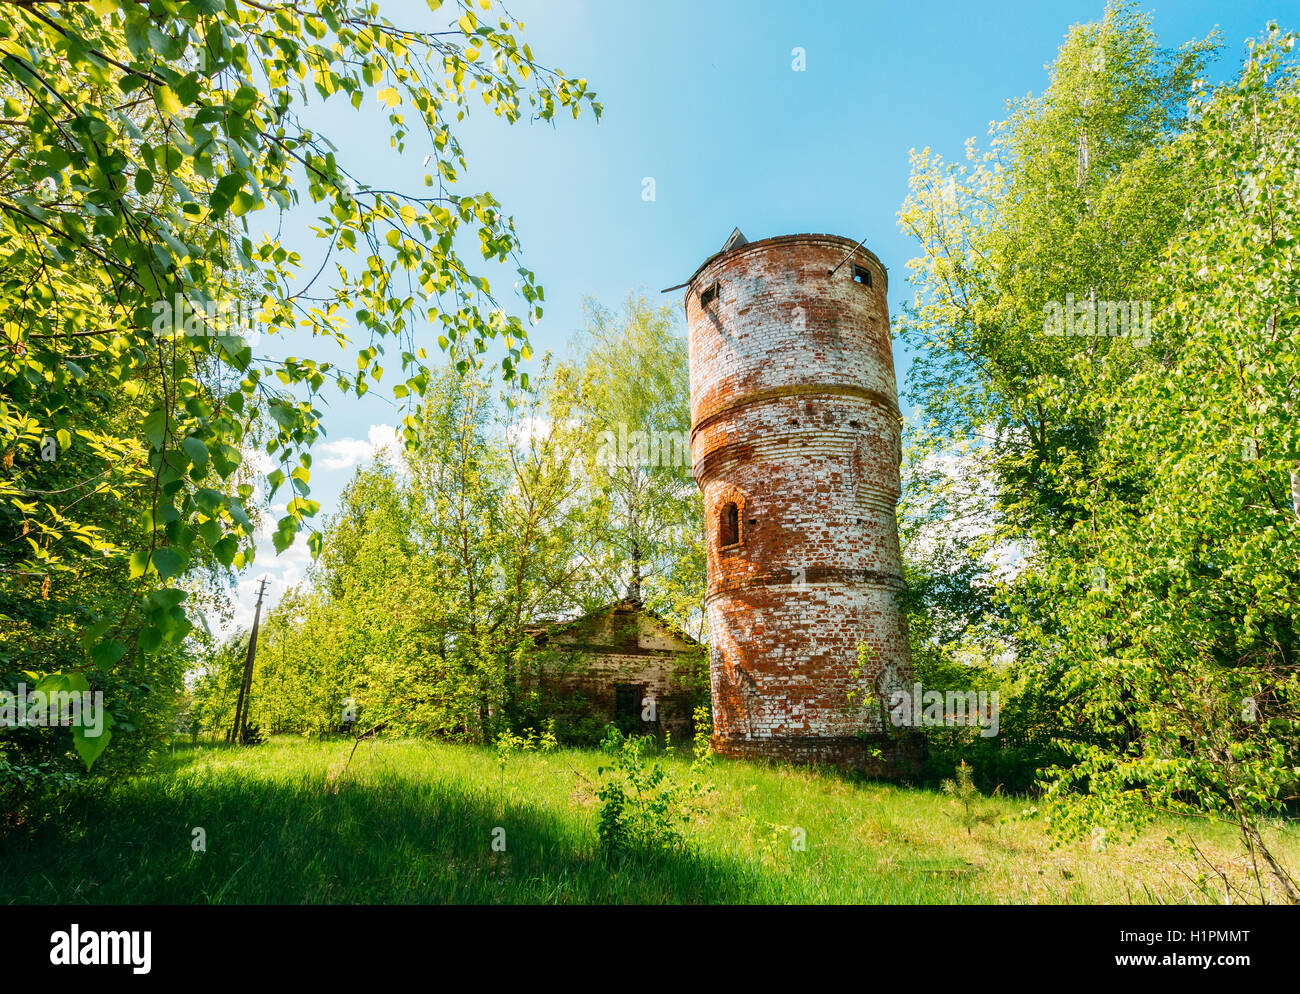 The Abandoned Brick Water Tower In Evacuated Zone After Chernobyl Catastrophe, Against The Background Of Scenic - Stock Image